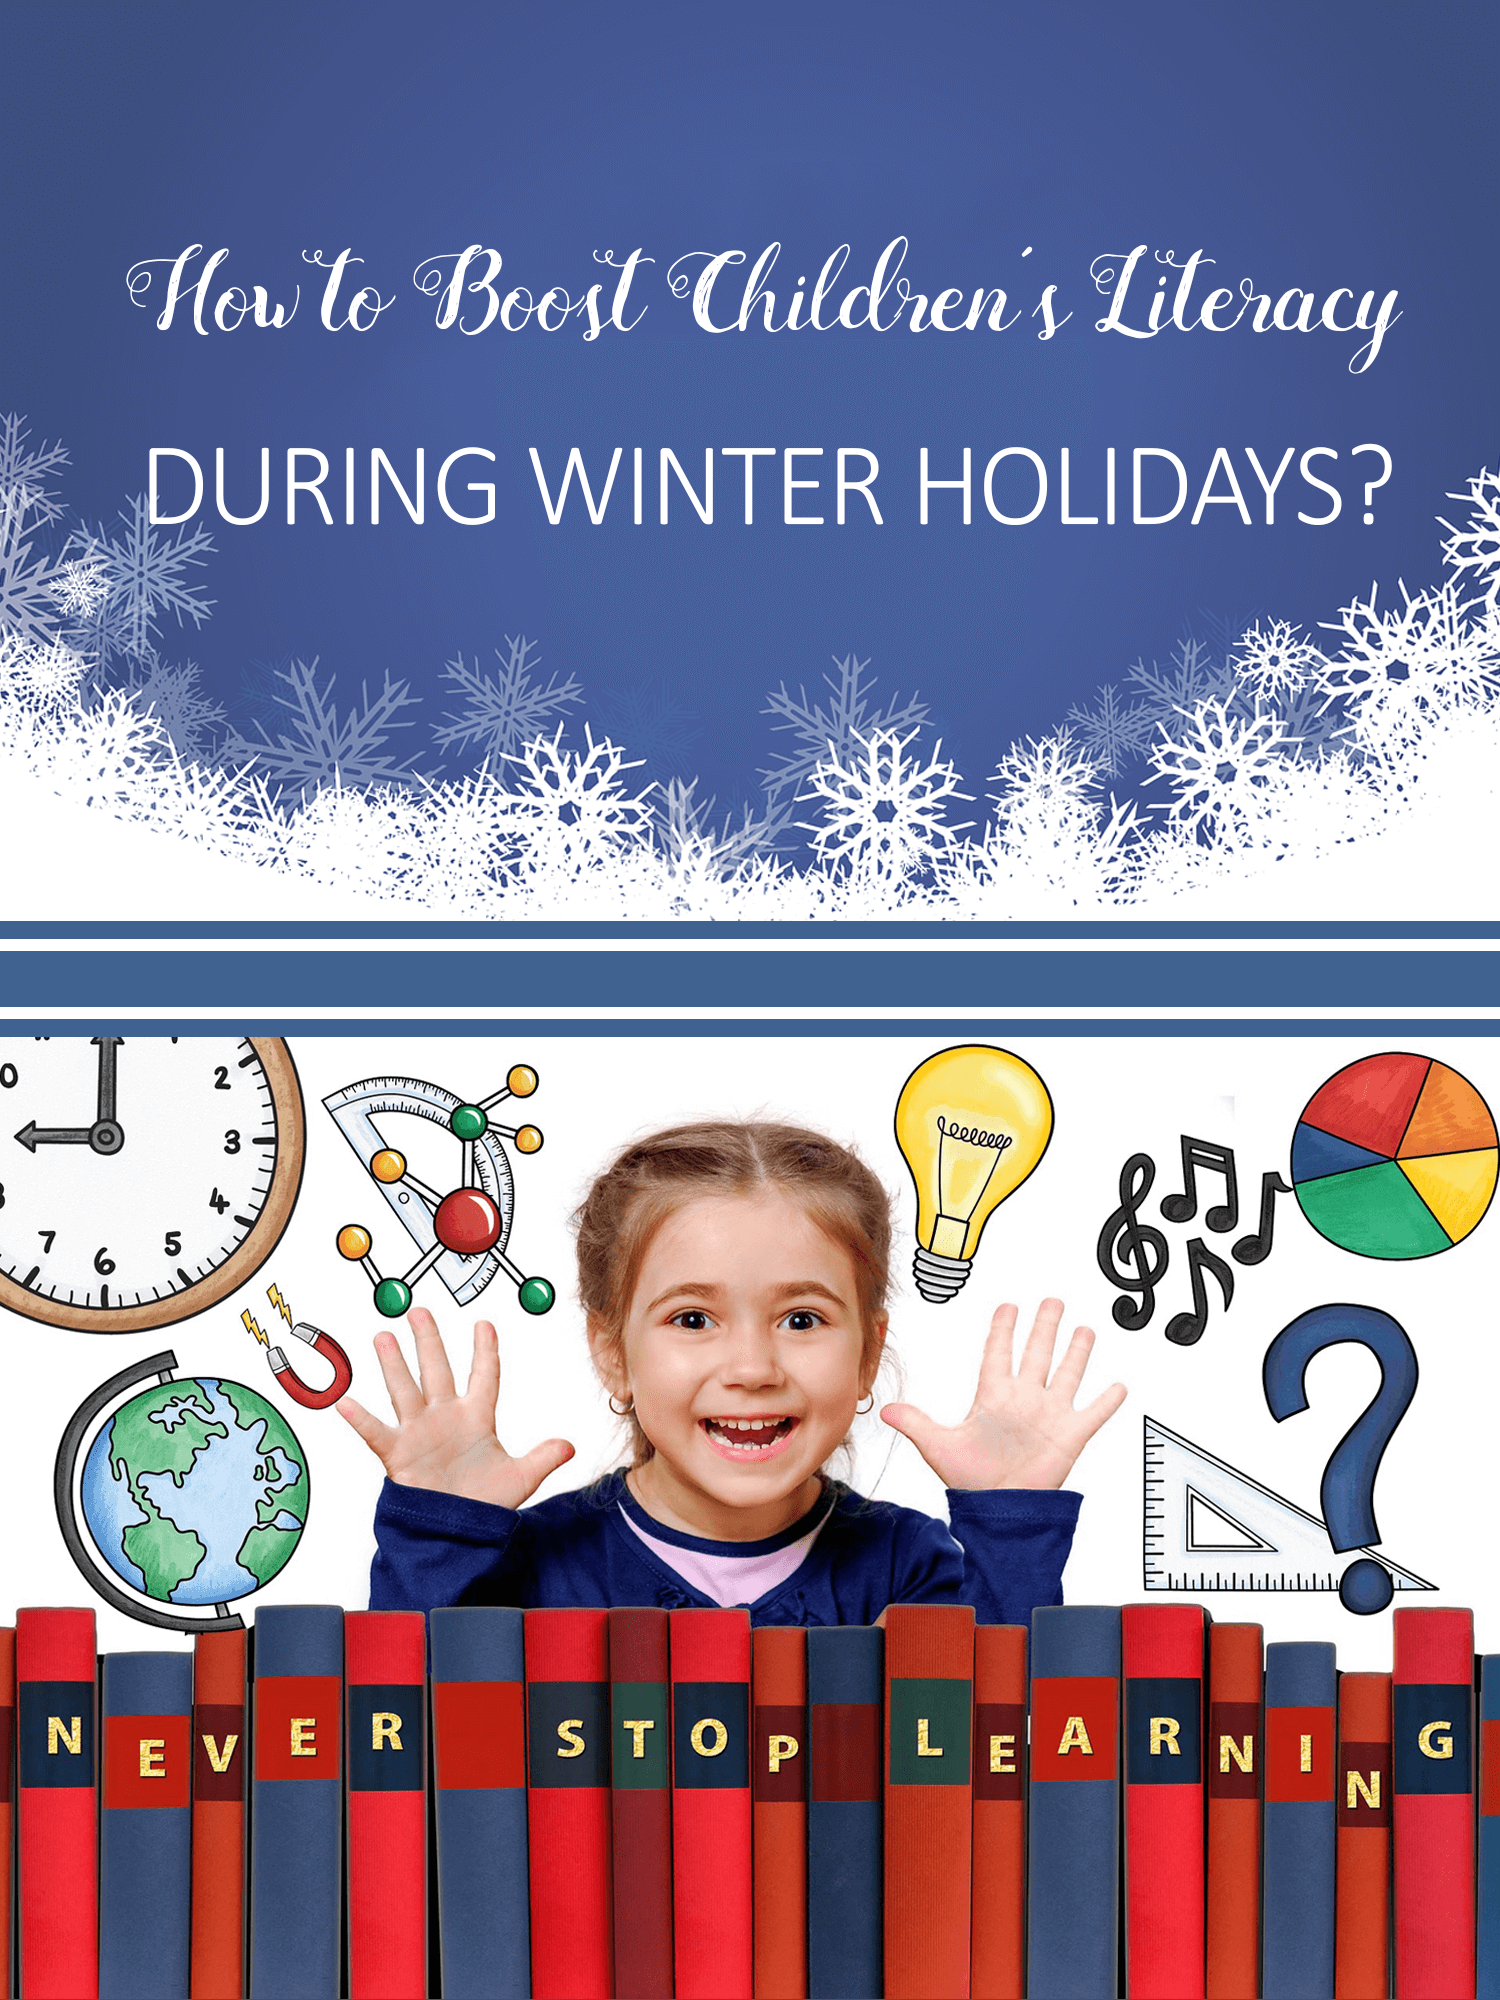 How to Boost Children's Literacy during Winter Holidays imagine forest